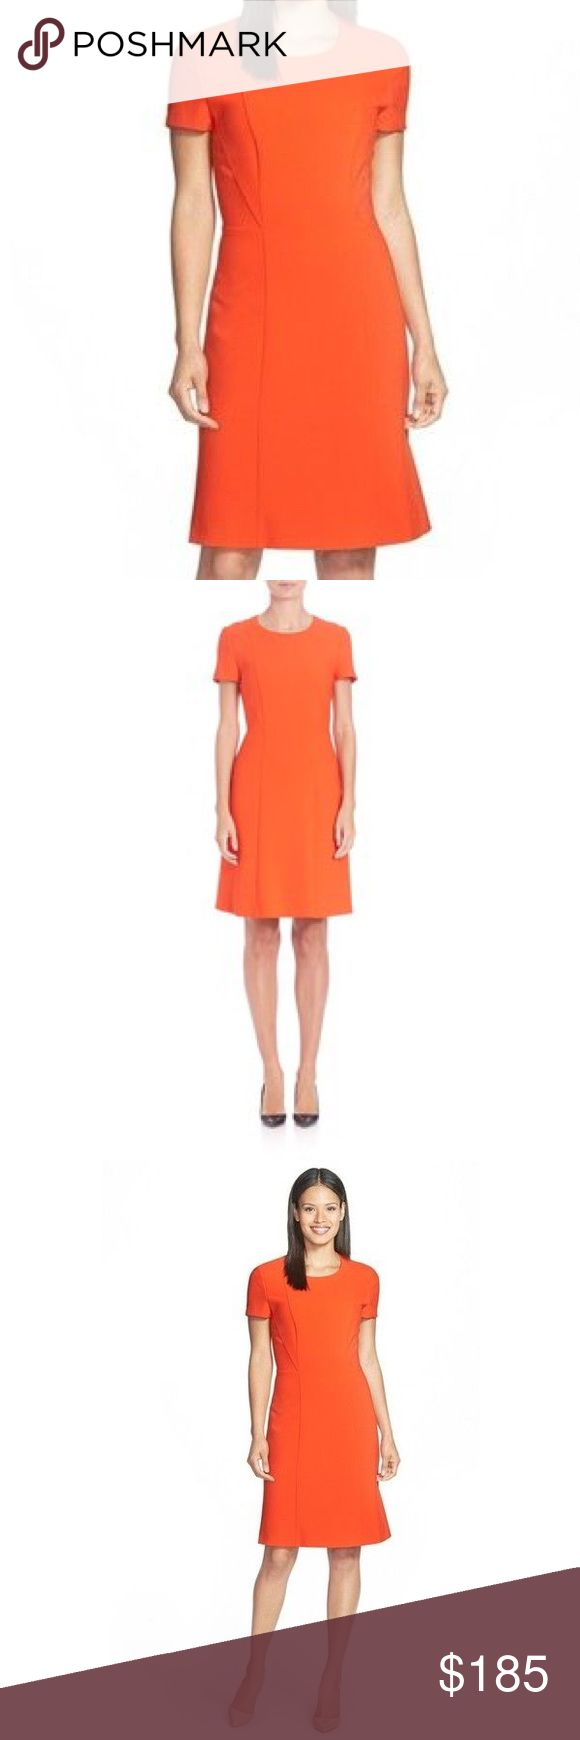 """Hugo Boss Dress Hugo Boss """"Dapena"""", Smooth, figure-flattering ponte shapes this short-sleeve silhouette, accented with sleek seam detailing and a slightly flared skirt. Roundneck. Concealed back zip. Seam detailing. Slightly flared skirt. Fitted silhouette. Lined. About 38.5"""" from shoulder to hem. Polyester/viscose/cotton/elastane. Dry clean. Imported. Model shown is 5'10"""" (177cm). Vibrant 🍅 tomato orange. Never Worn Hugo Boss Dresses Midi"""